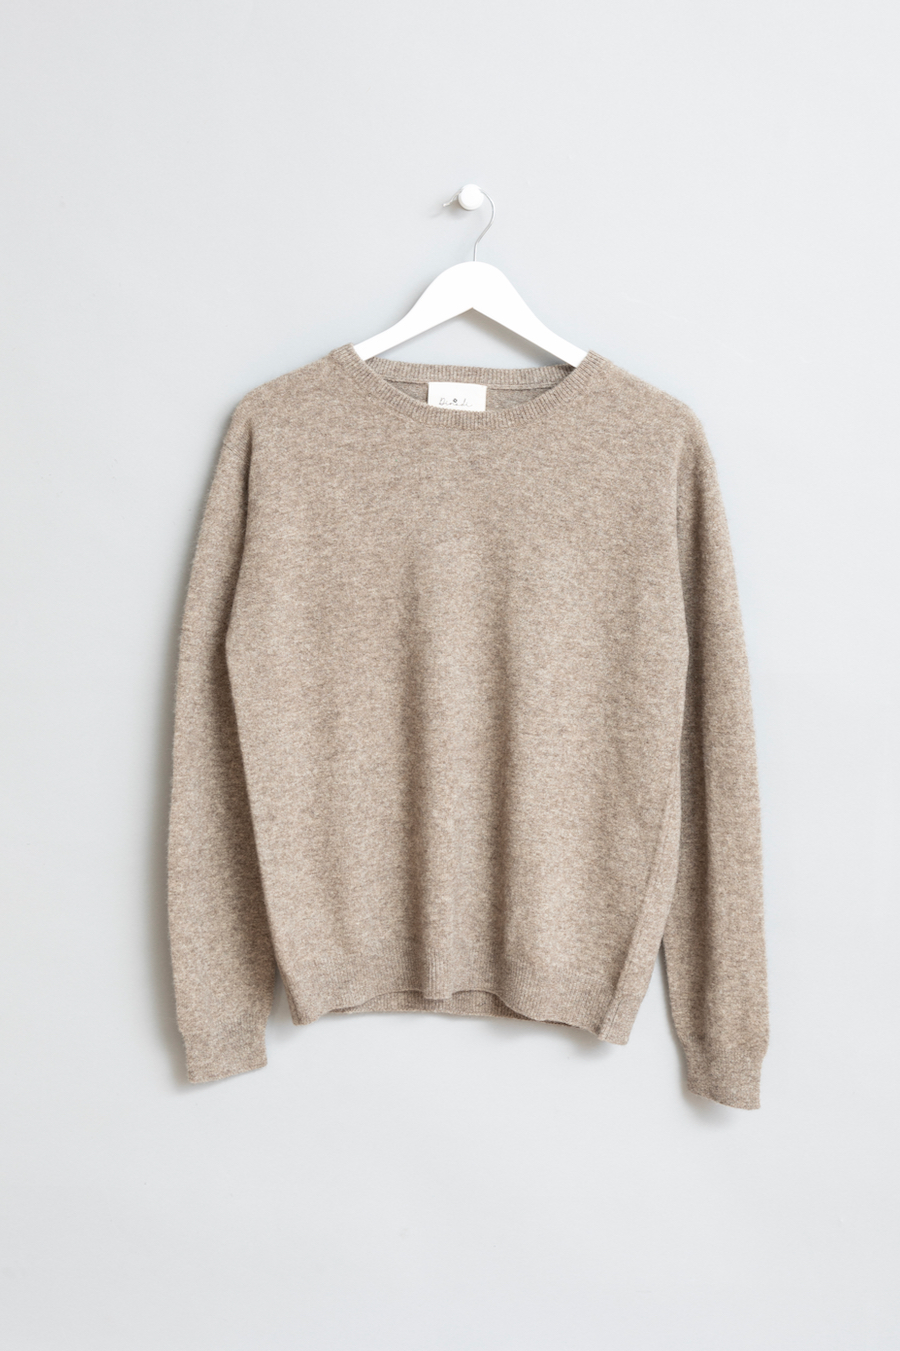 Dinadi - YAK Sweater, Oat Brown